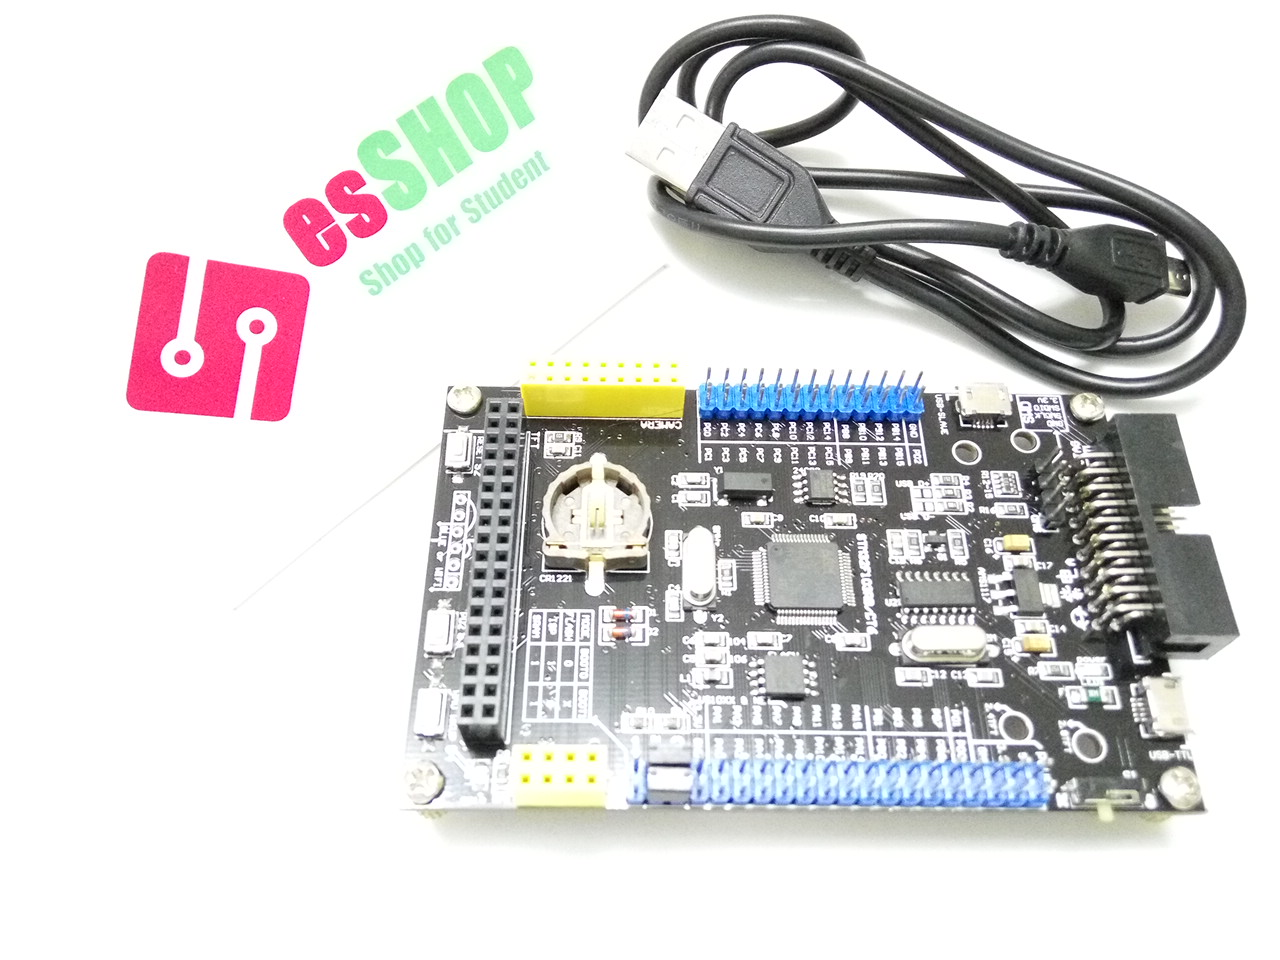 Kit develop STM32F103RCT6